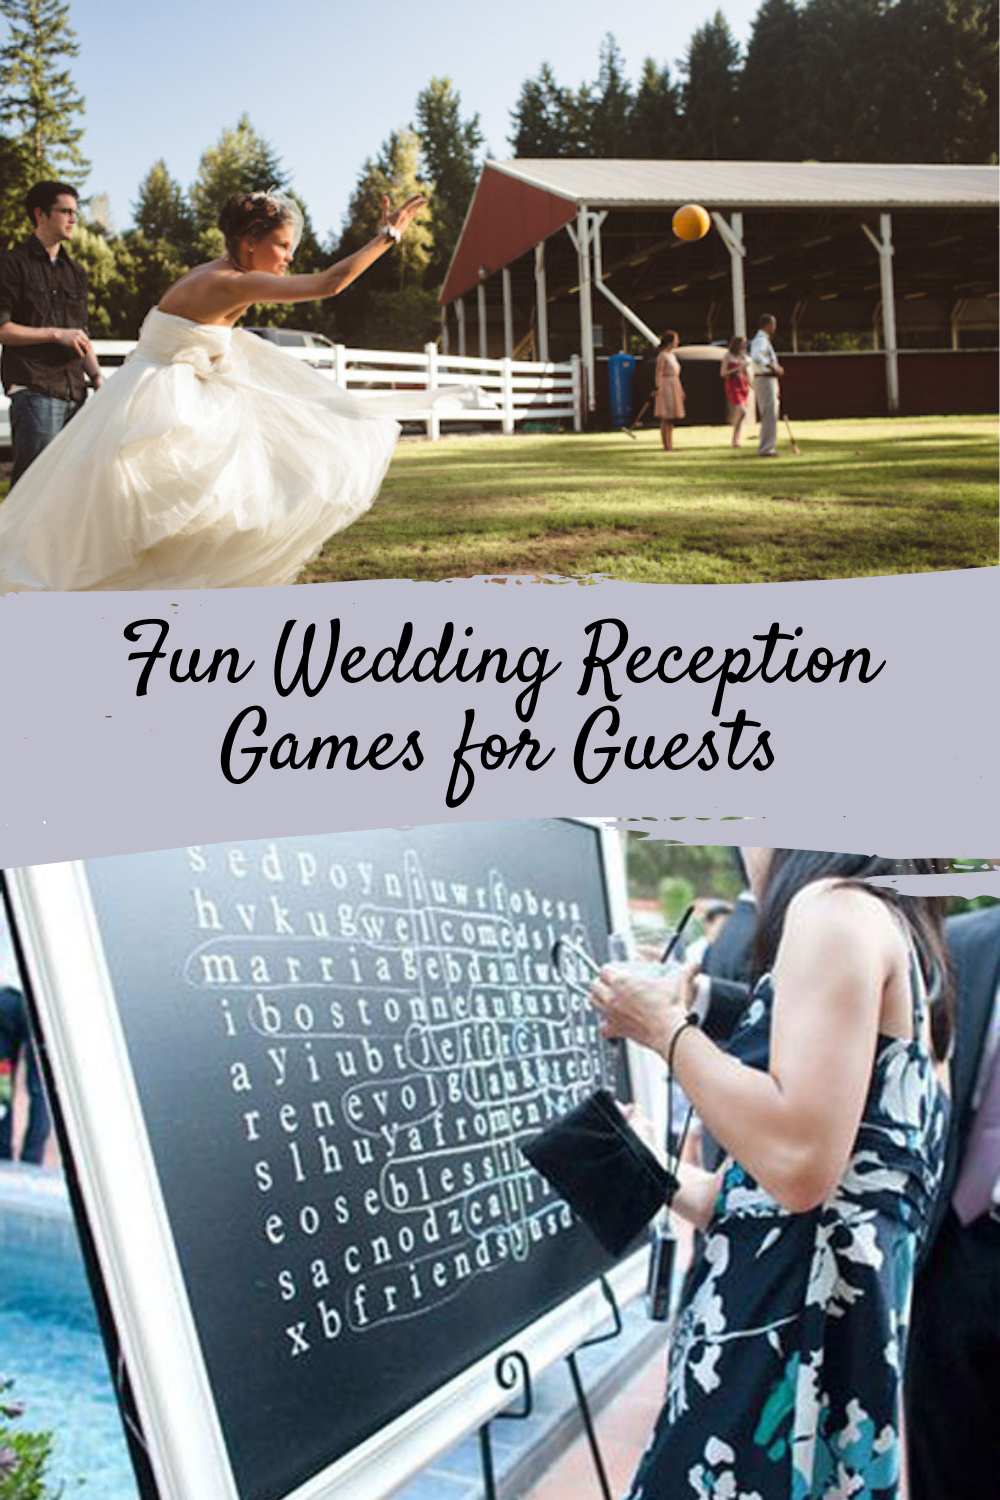 Fun Wedding Reception Games for Guests